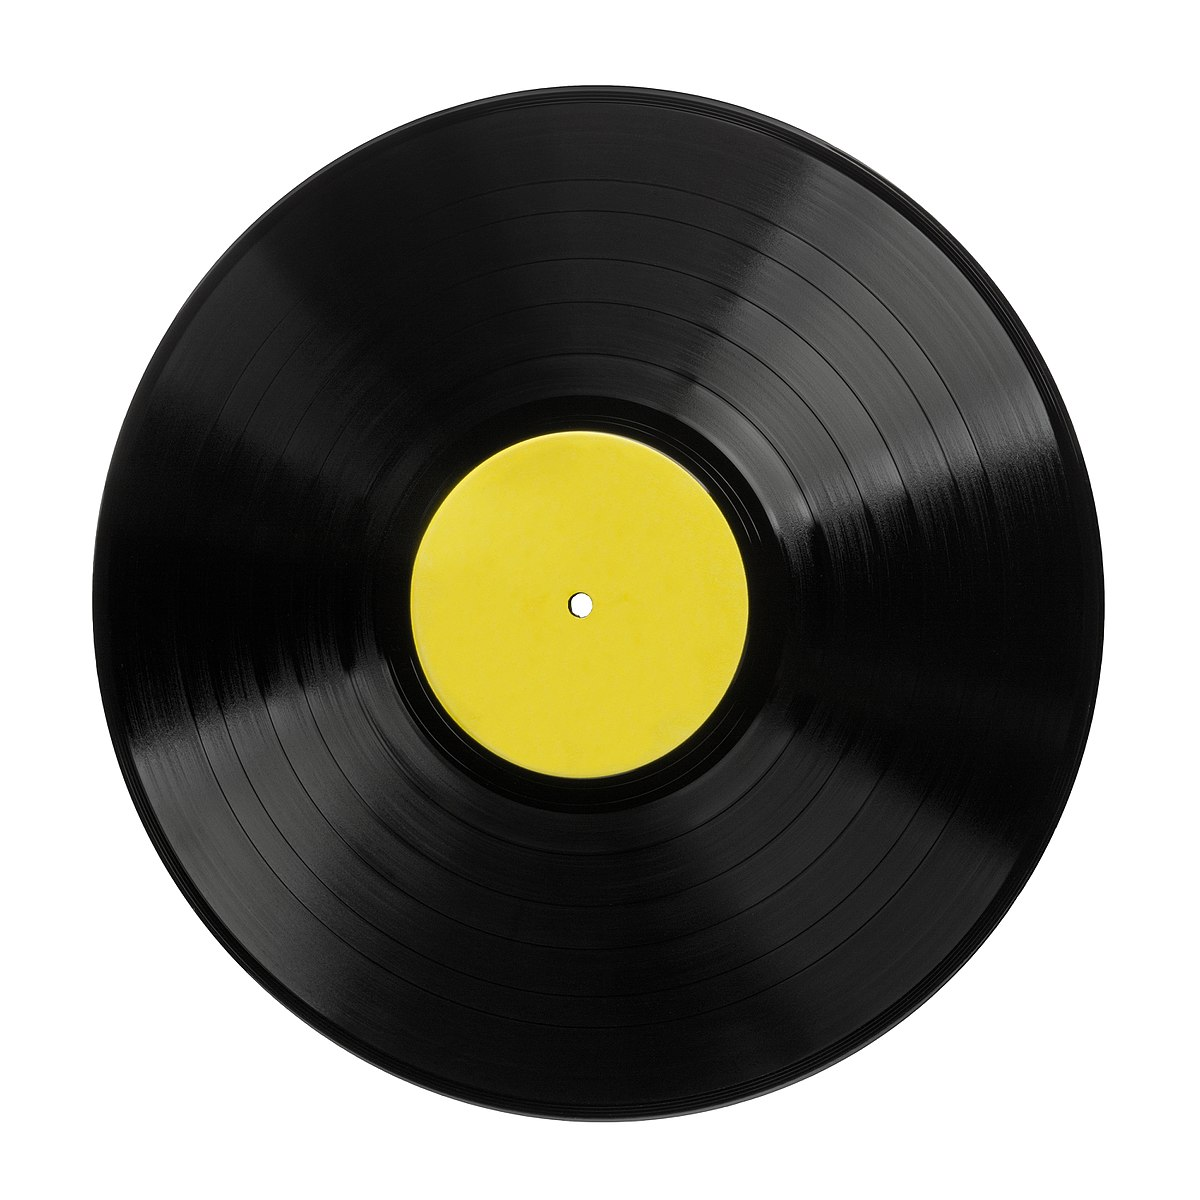 1200px-12in-Vinyl-LP-Record-Angle.jpg